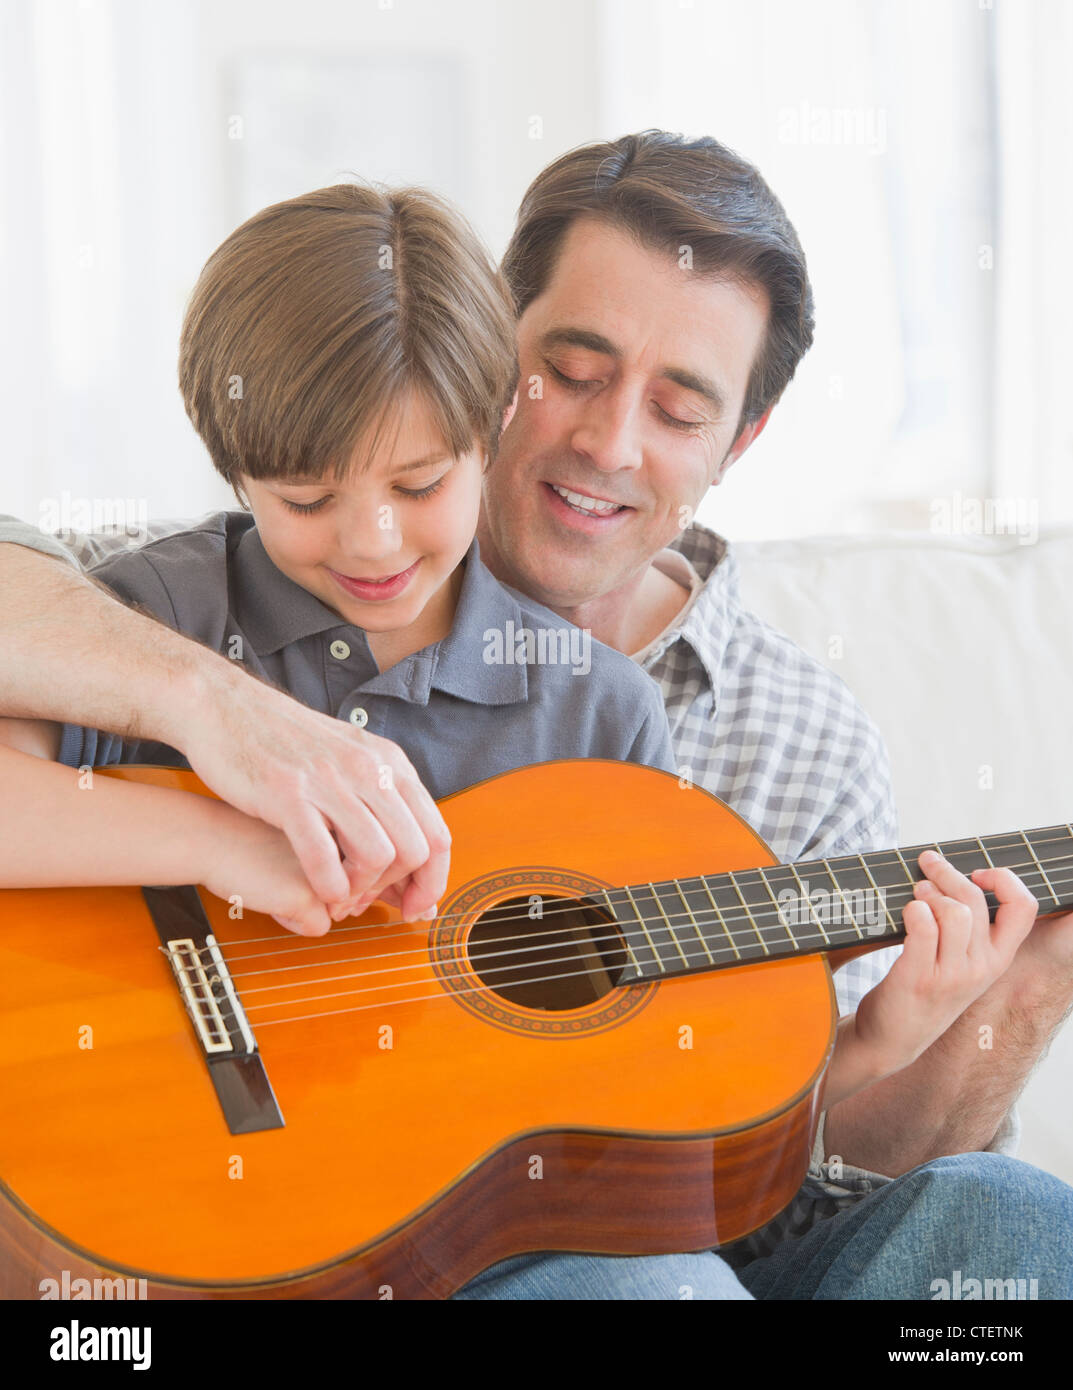 USA, New Jersey, Jersey City, Father teaching son (10-11 years) how to play acoustic guitar - Stock Image